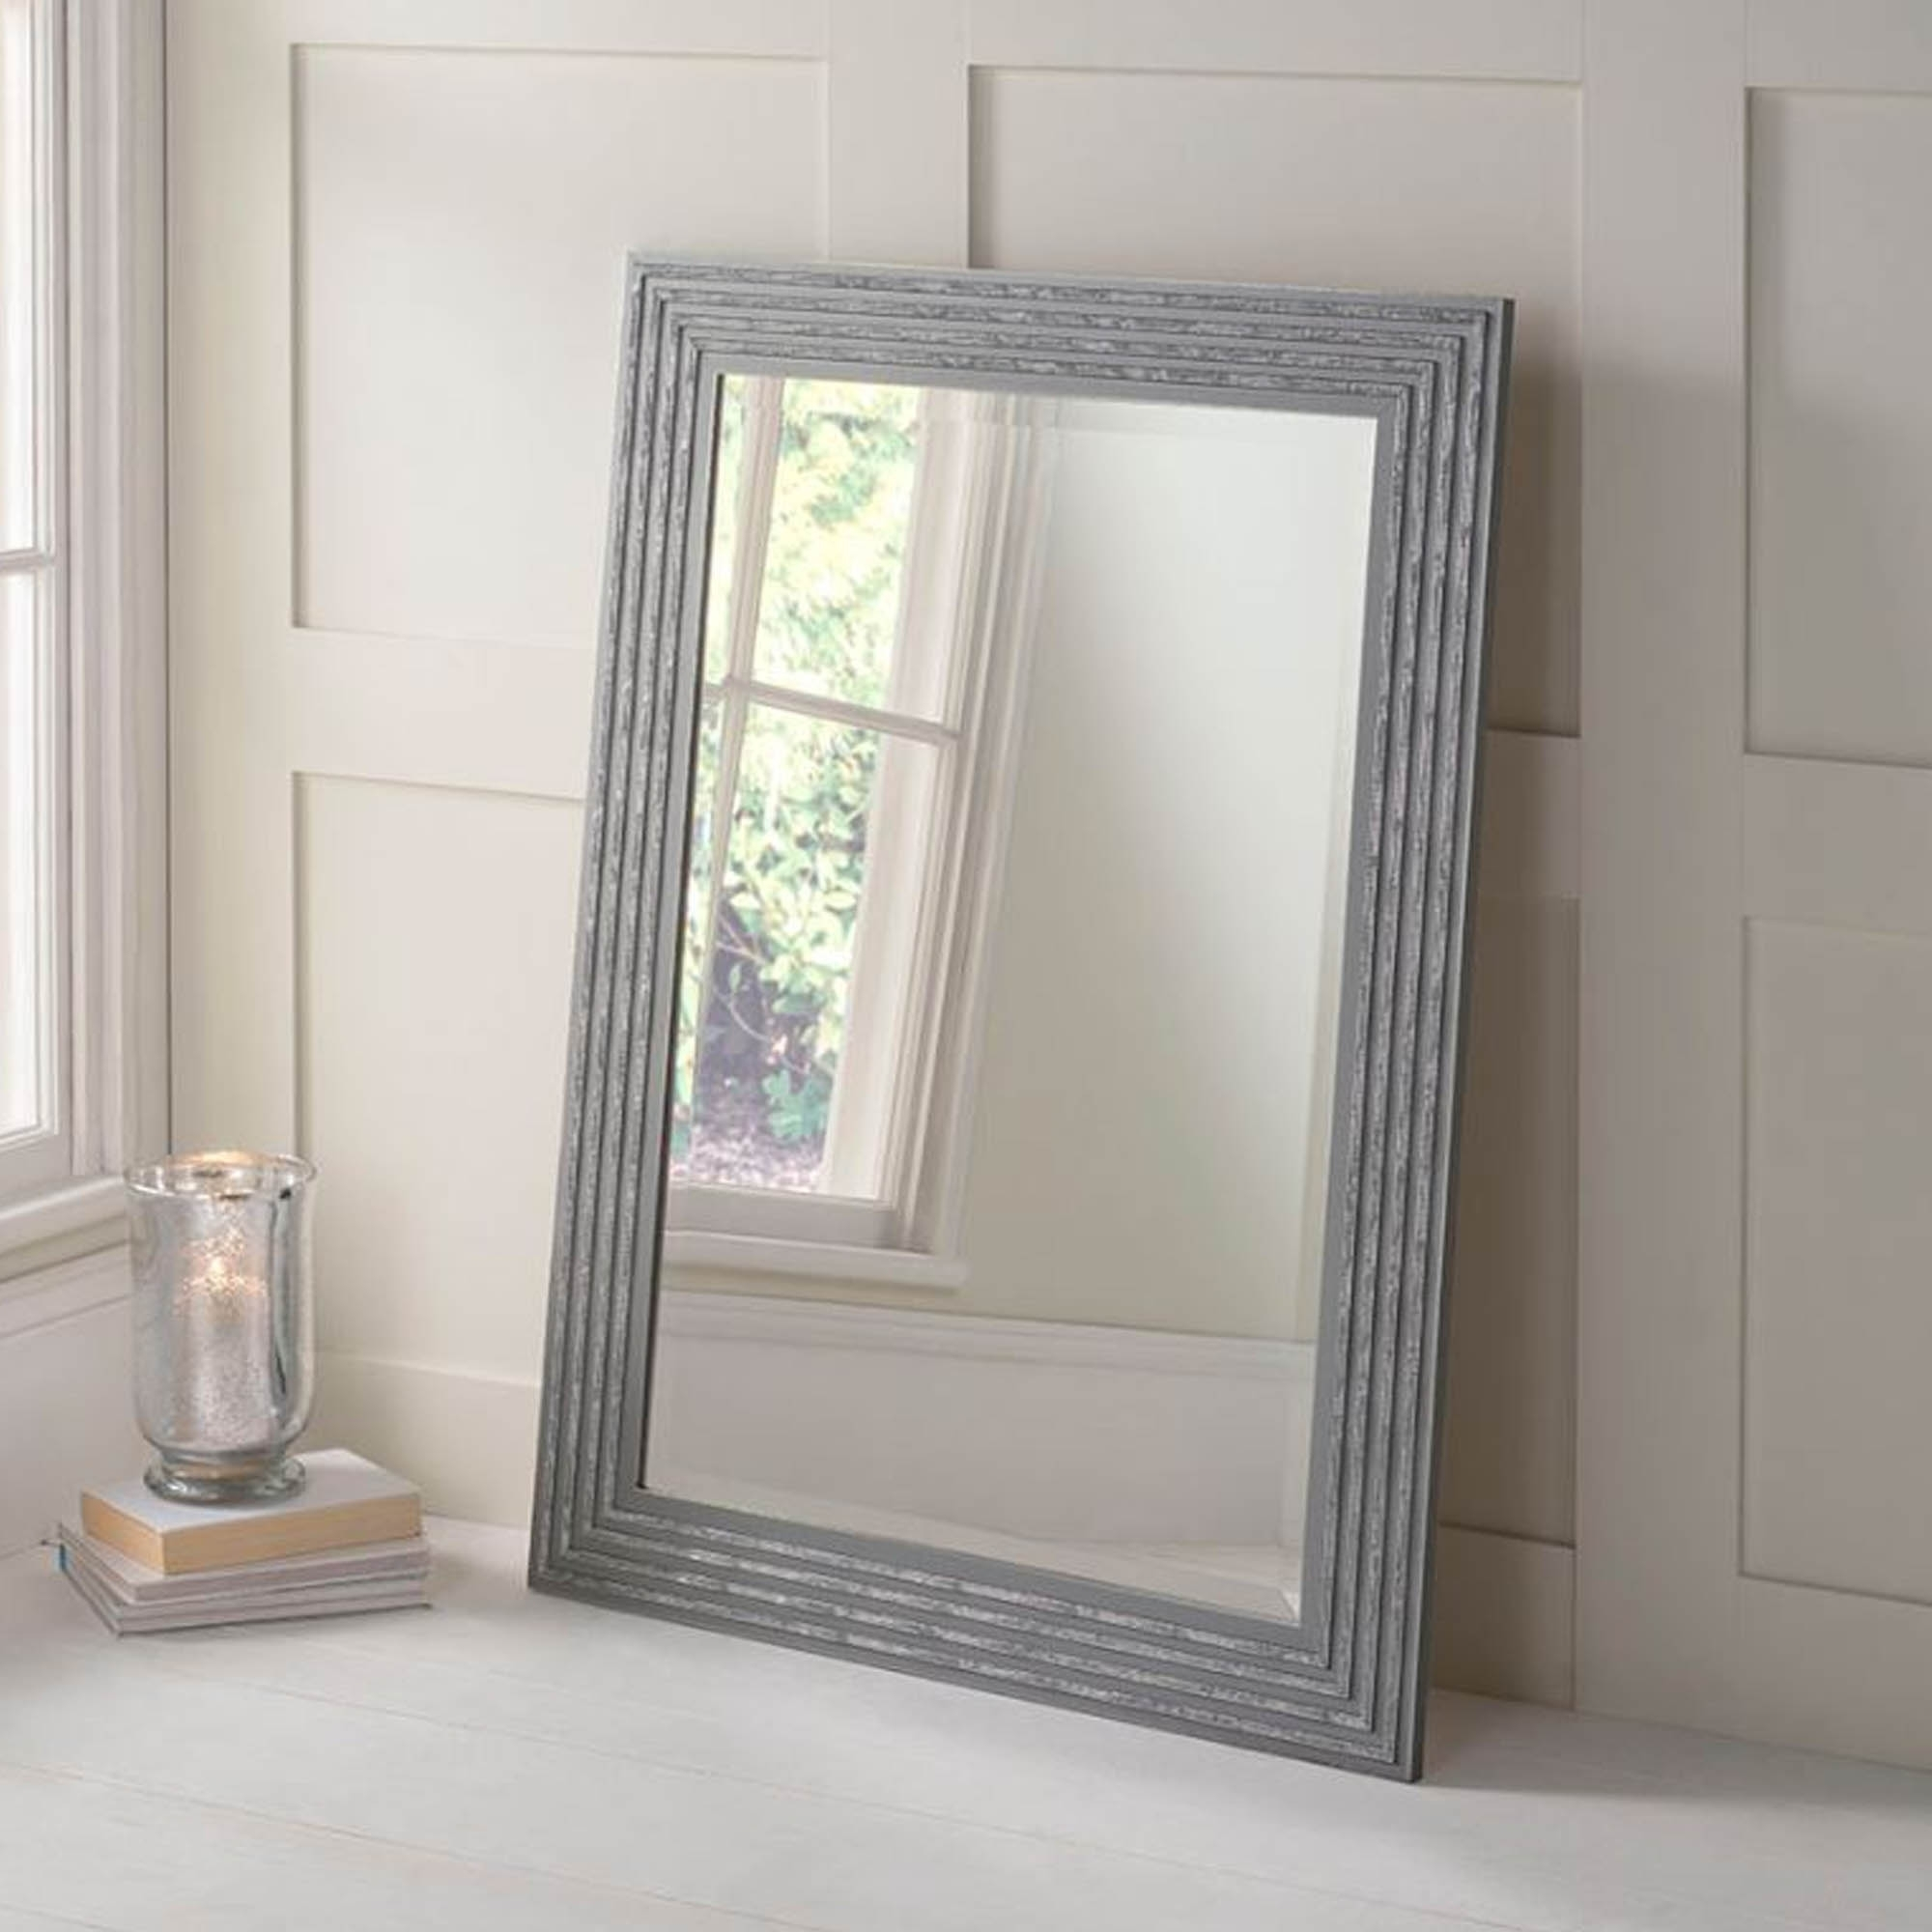 Grey and Silver Decorative Wall Mirror | Decor ... on Wall Mirrors id=51285